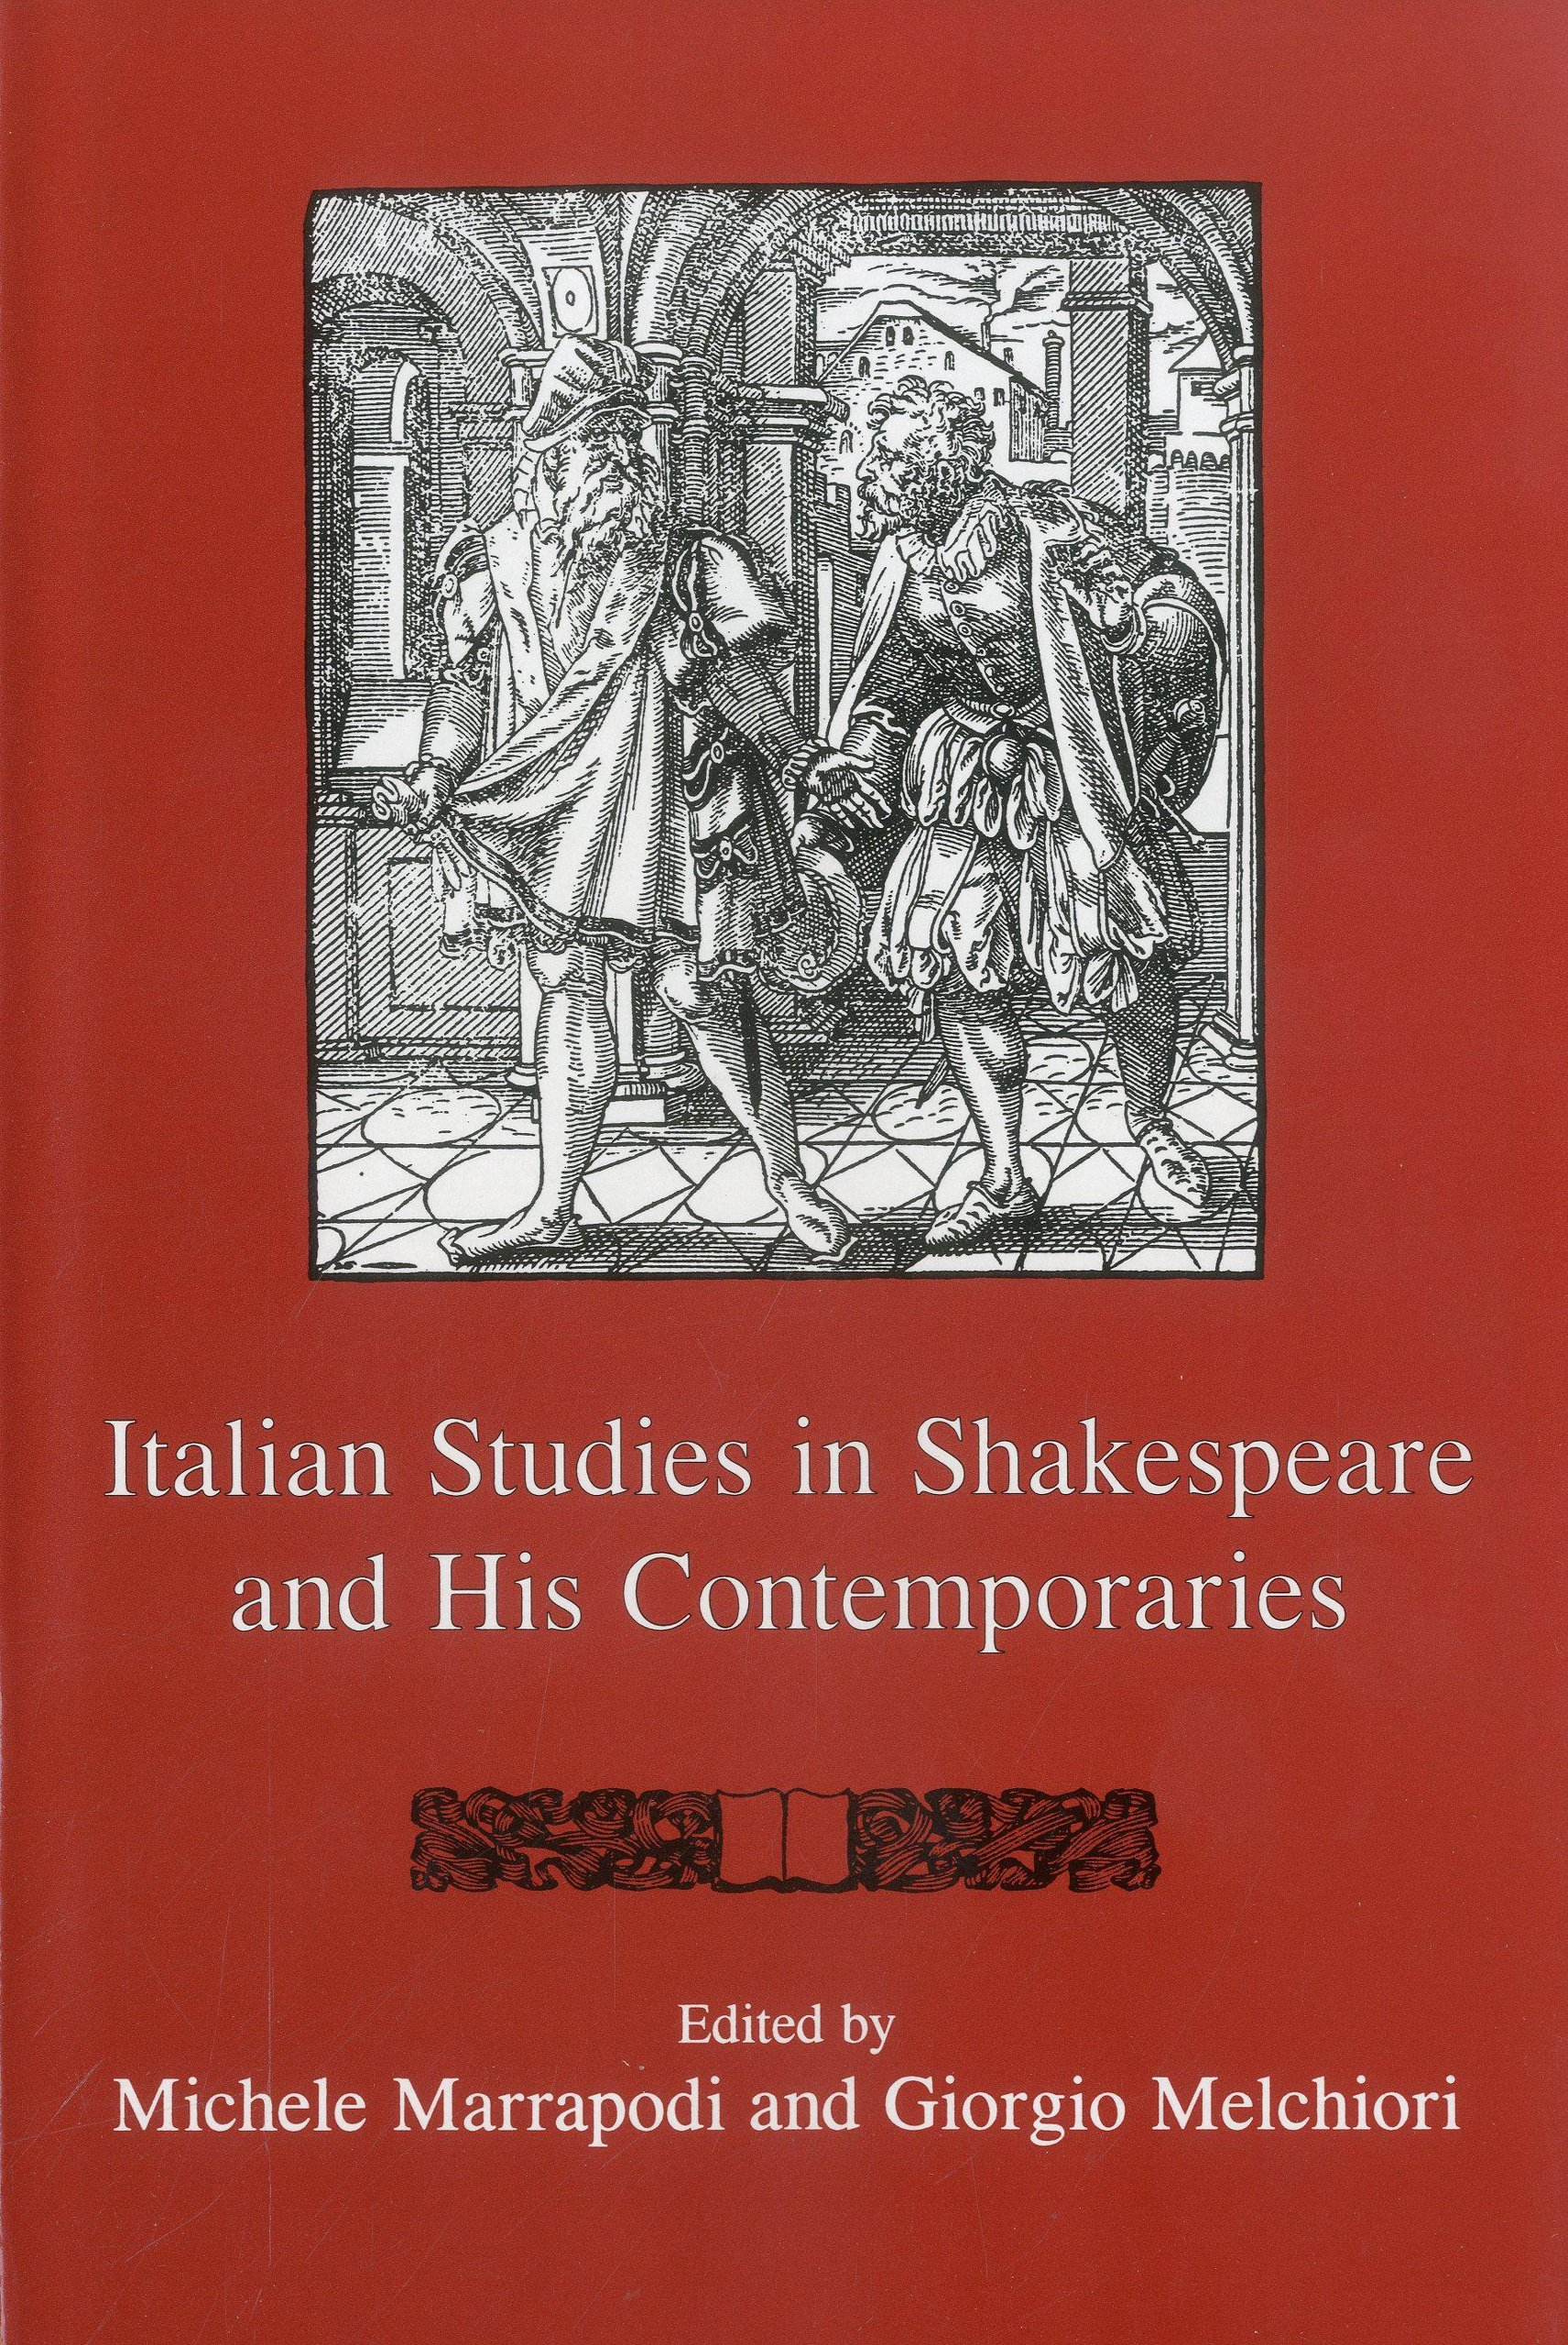 Download Italian Studies In Shakespeare and His Contemporaries (Shakespeare and His Contemporaries: The International Shakespeare Series) pdf epub